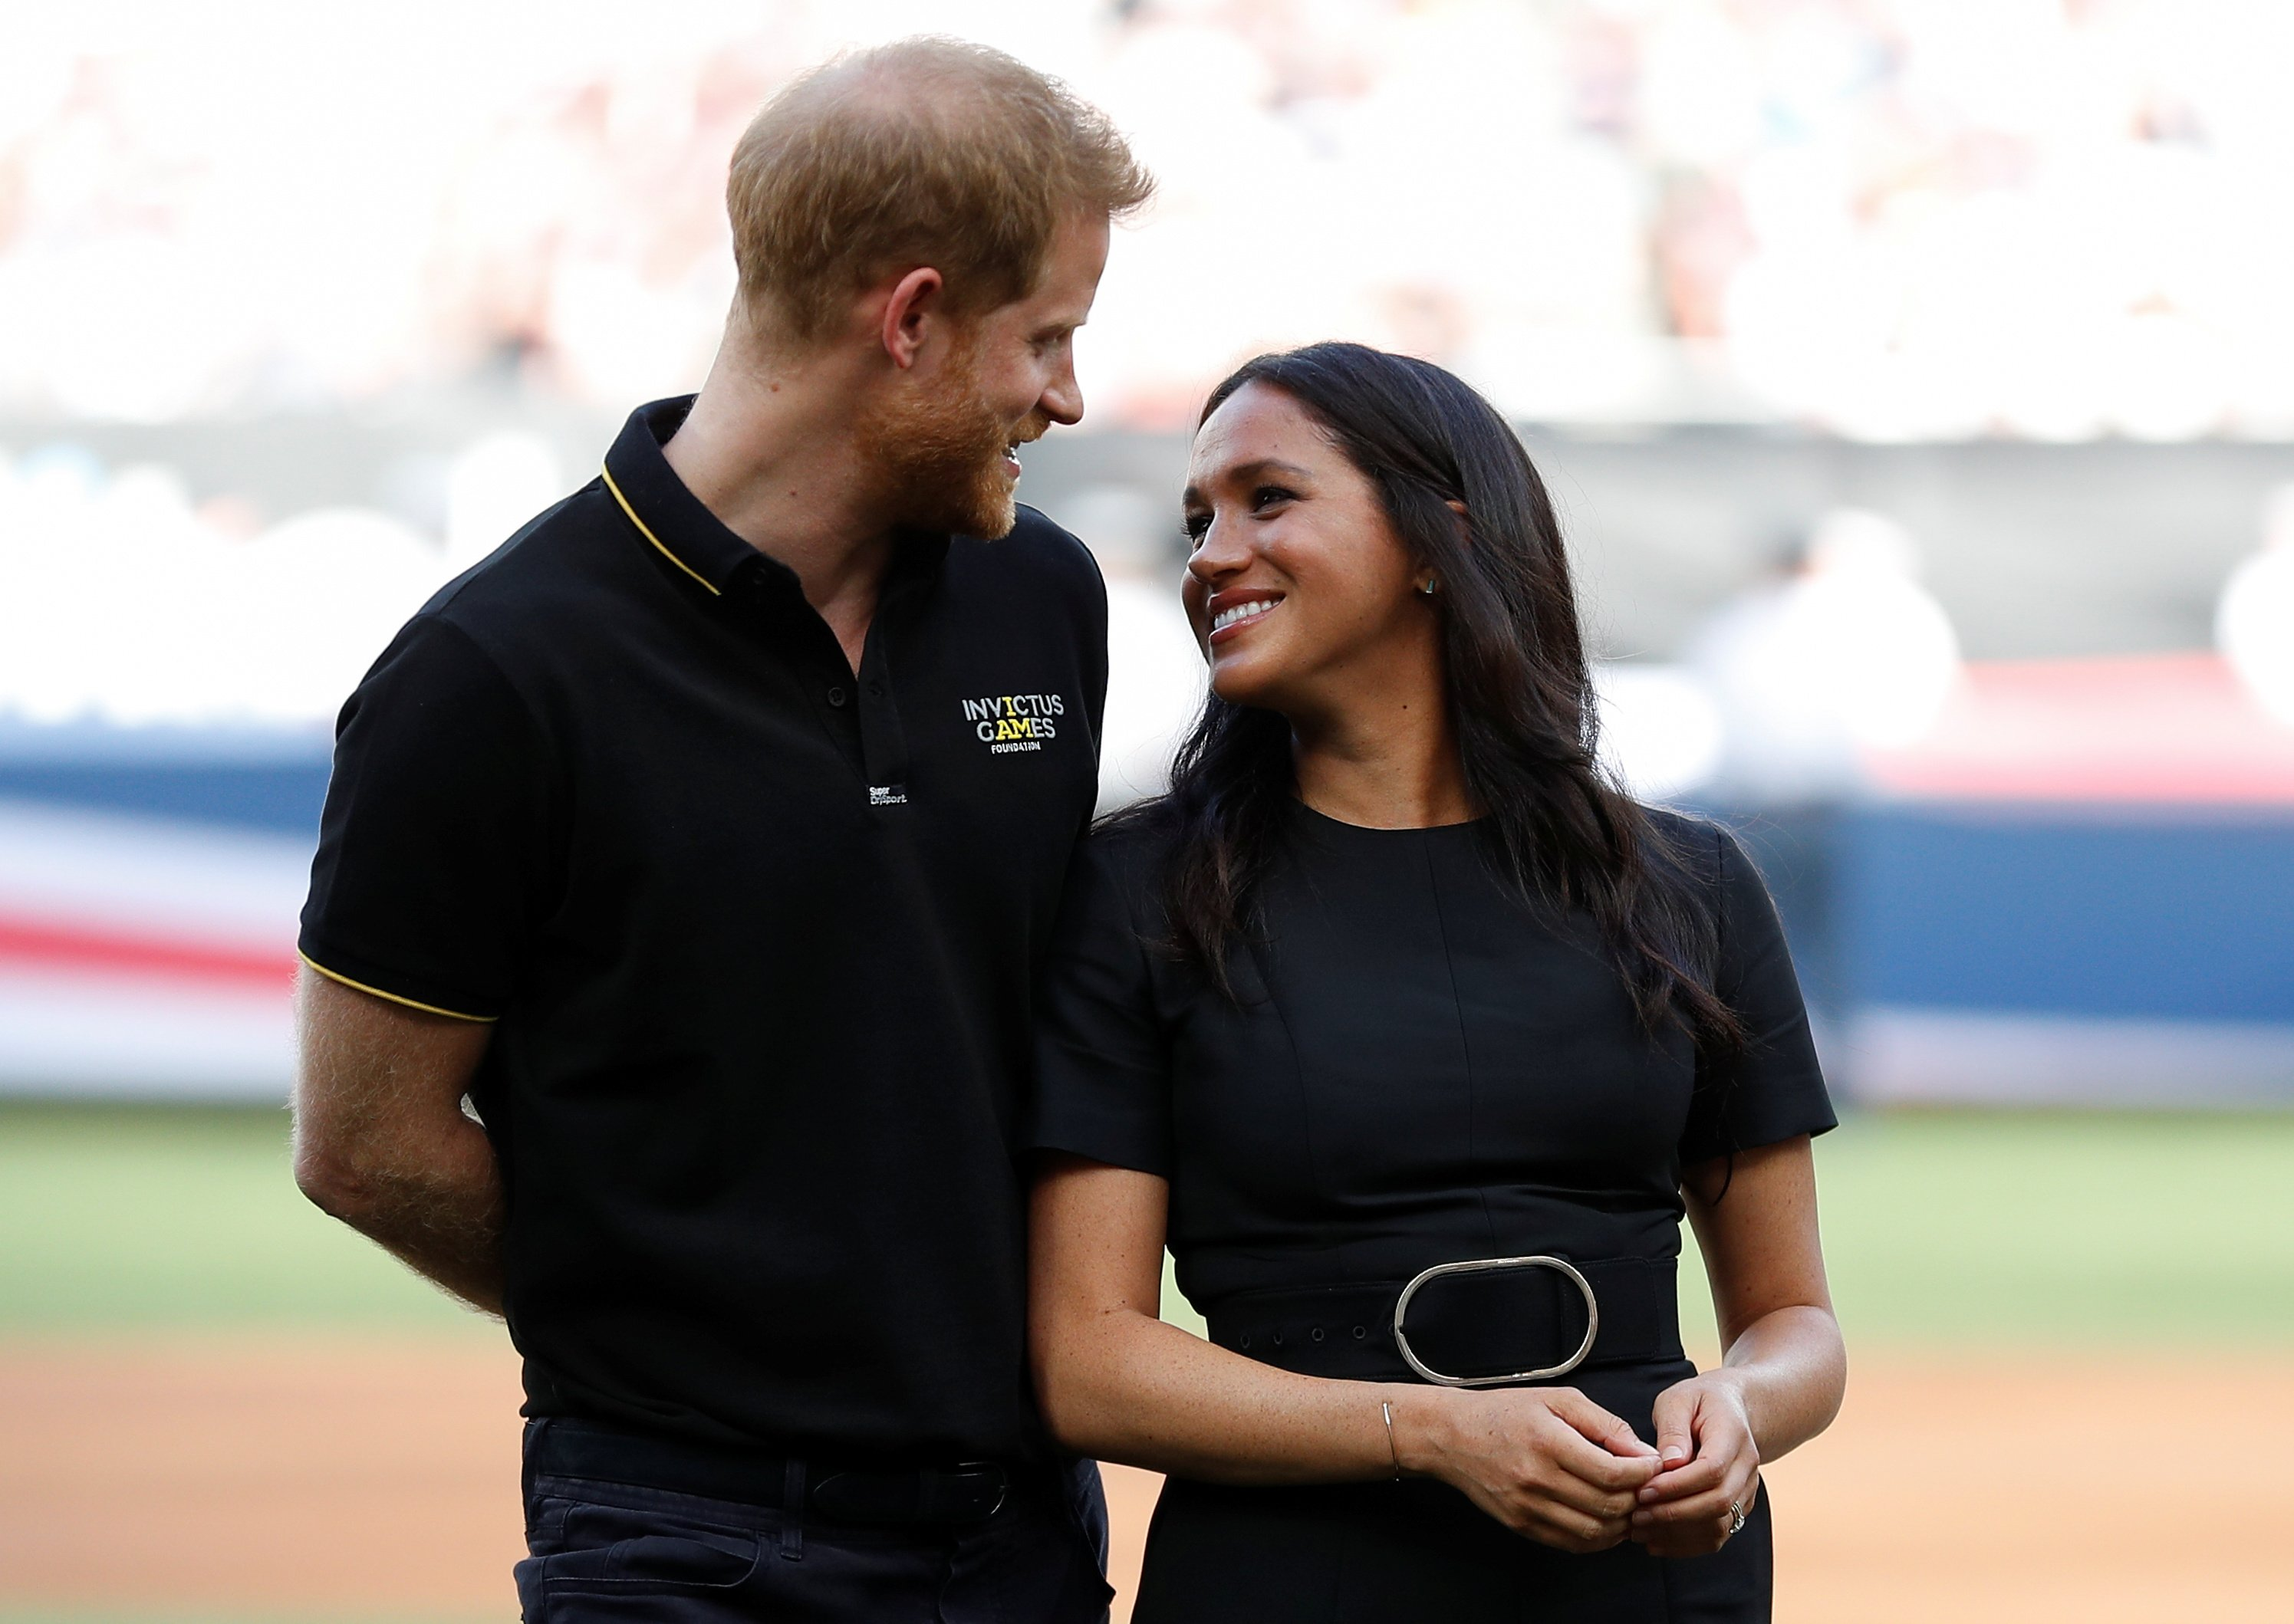 Prince Harry and Meghan Markle attend the Boston Red Sox vs New York Yankees baseball game at London Stadium on June 29, 2019 in London, England   Photo: Getty Images